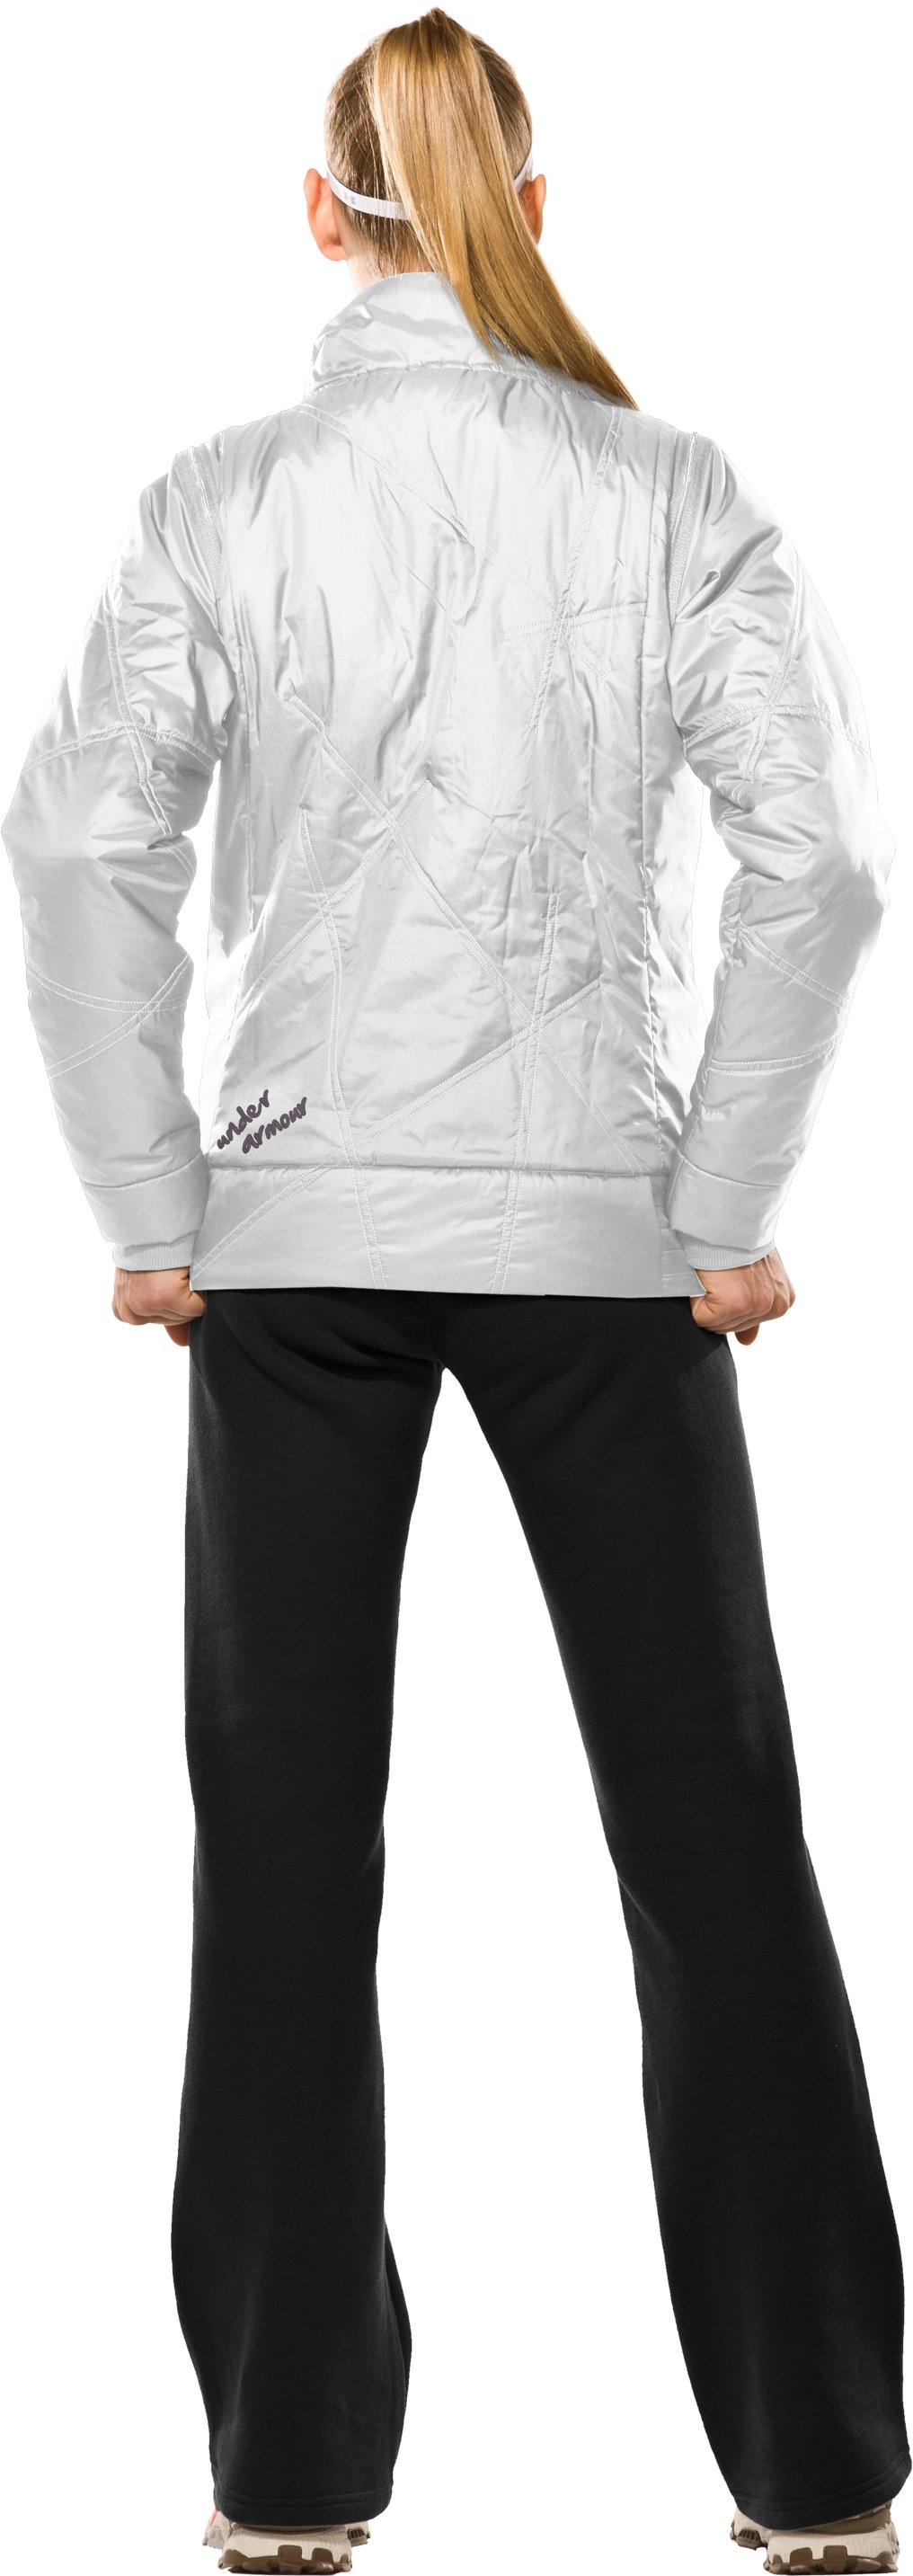 Women's Choice ArmourLoft® Jacket II, White, Back